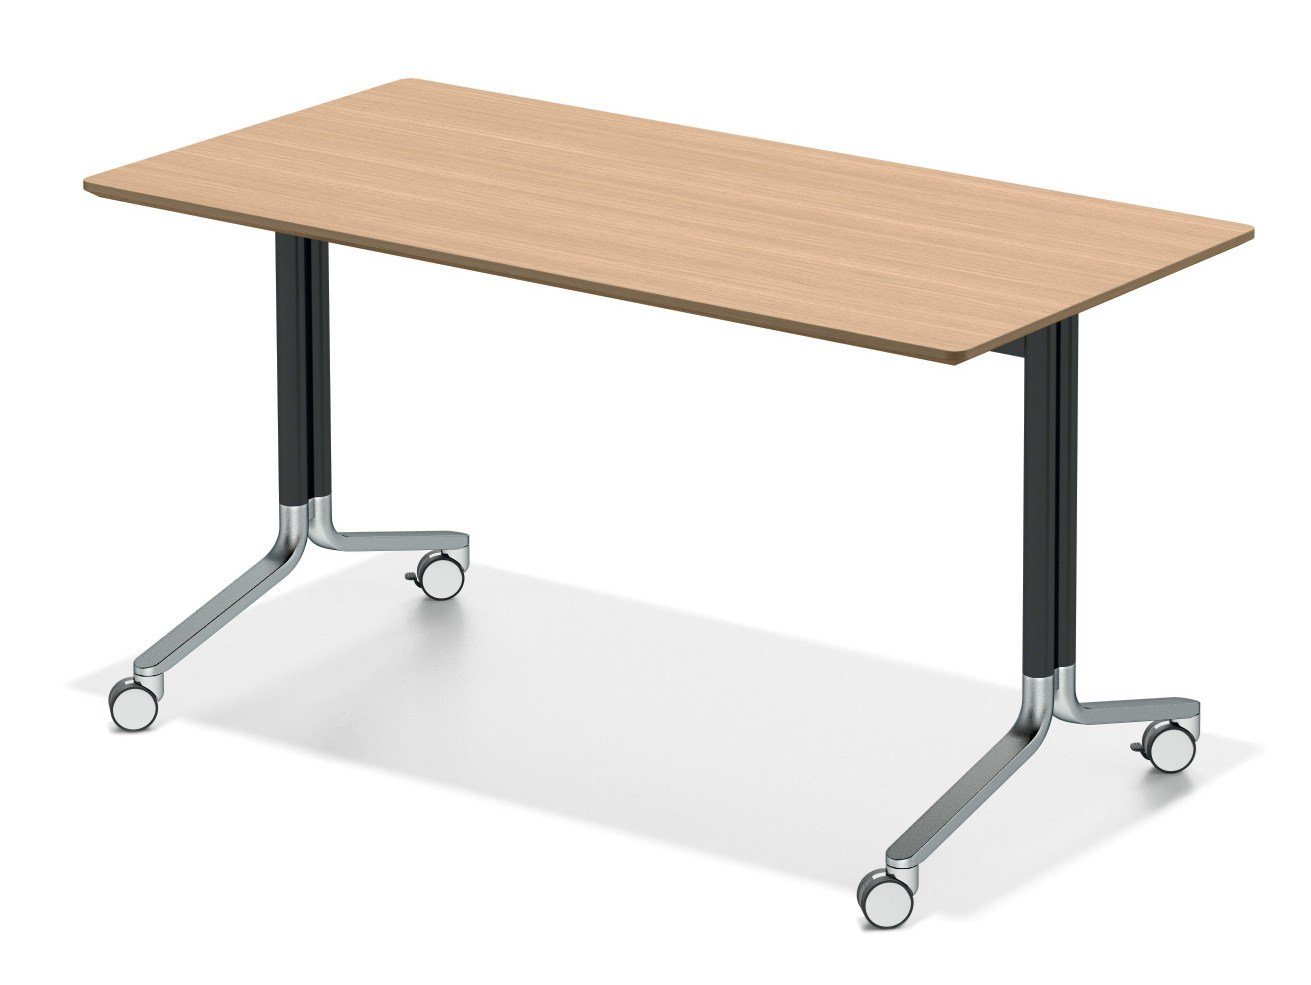 Table de r union pliante roulettes temo fliptop by - Table pliante a roulettes ...